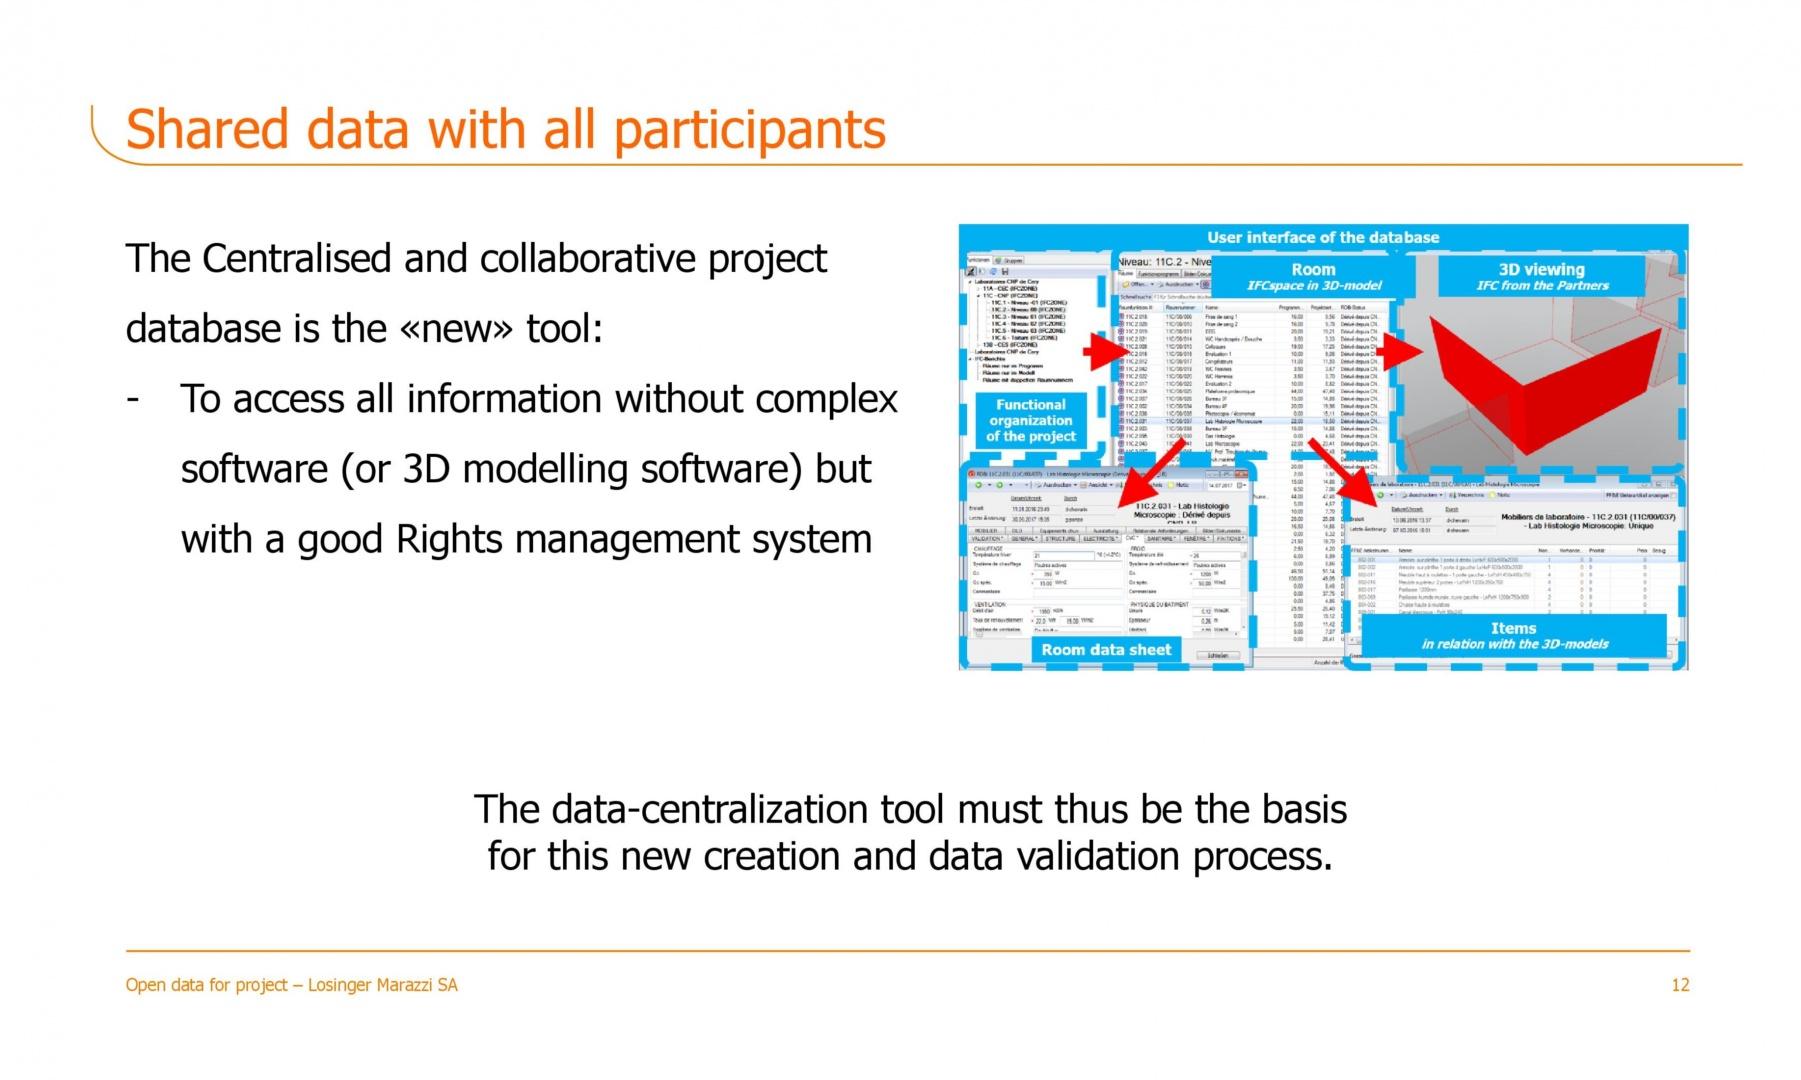 Shared data with all participants © Losinger Marazzi SA